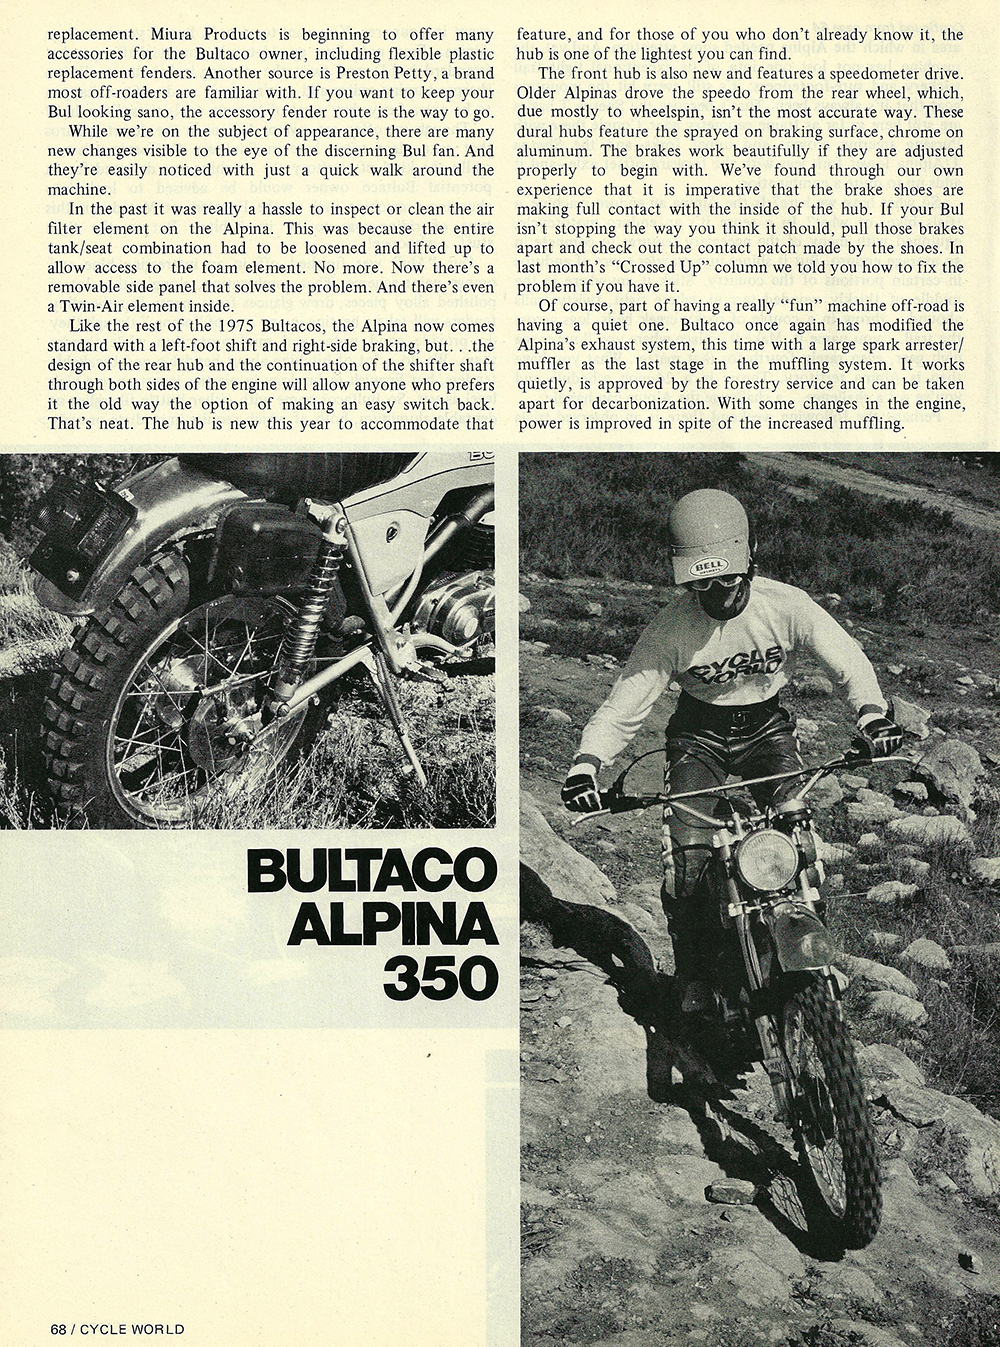 1975 Bultaco Alpina 350 road test 03.jpg